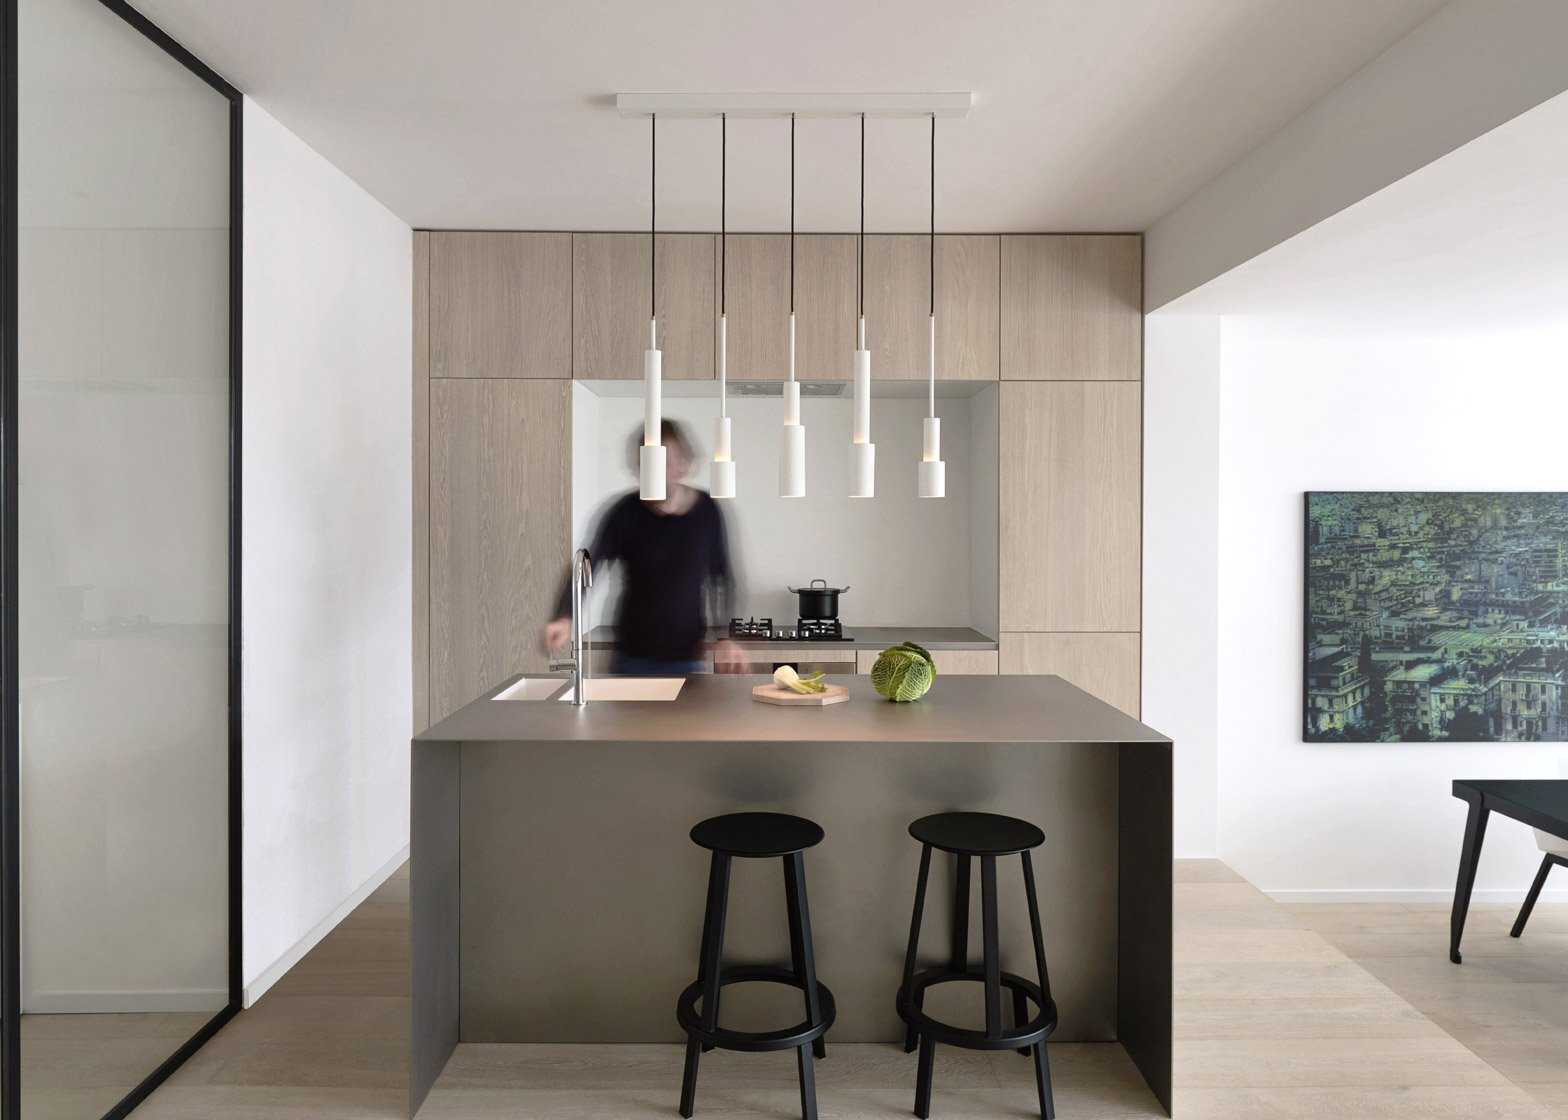 A Sleek Minimalist Apartment in Amsterdam by Frederik Roijé on kitchen ceiling treatment ideas, kitchen shabby chic, kitchen electrical ideas, rustic kitchen ideas, kitchen modern ideas, kitchen color ideas, kitchen decorating, kitchen decorations, kitchen storage ideas, kitchen design, kitchen backsplash ideas, kitchen themes, kitchen sewing ideas, kitchen accessories, kitchen wood ideas, kitchen cabinets ideas, kitchen rugs ideas, kitchen flower arrangement ideas, kitchen fall ideas, kitchen remodeling ideas,